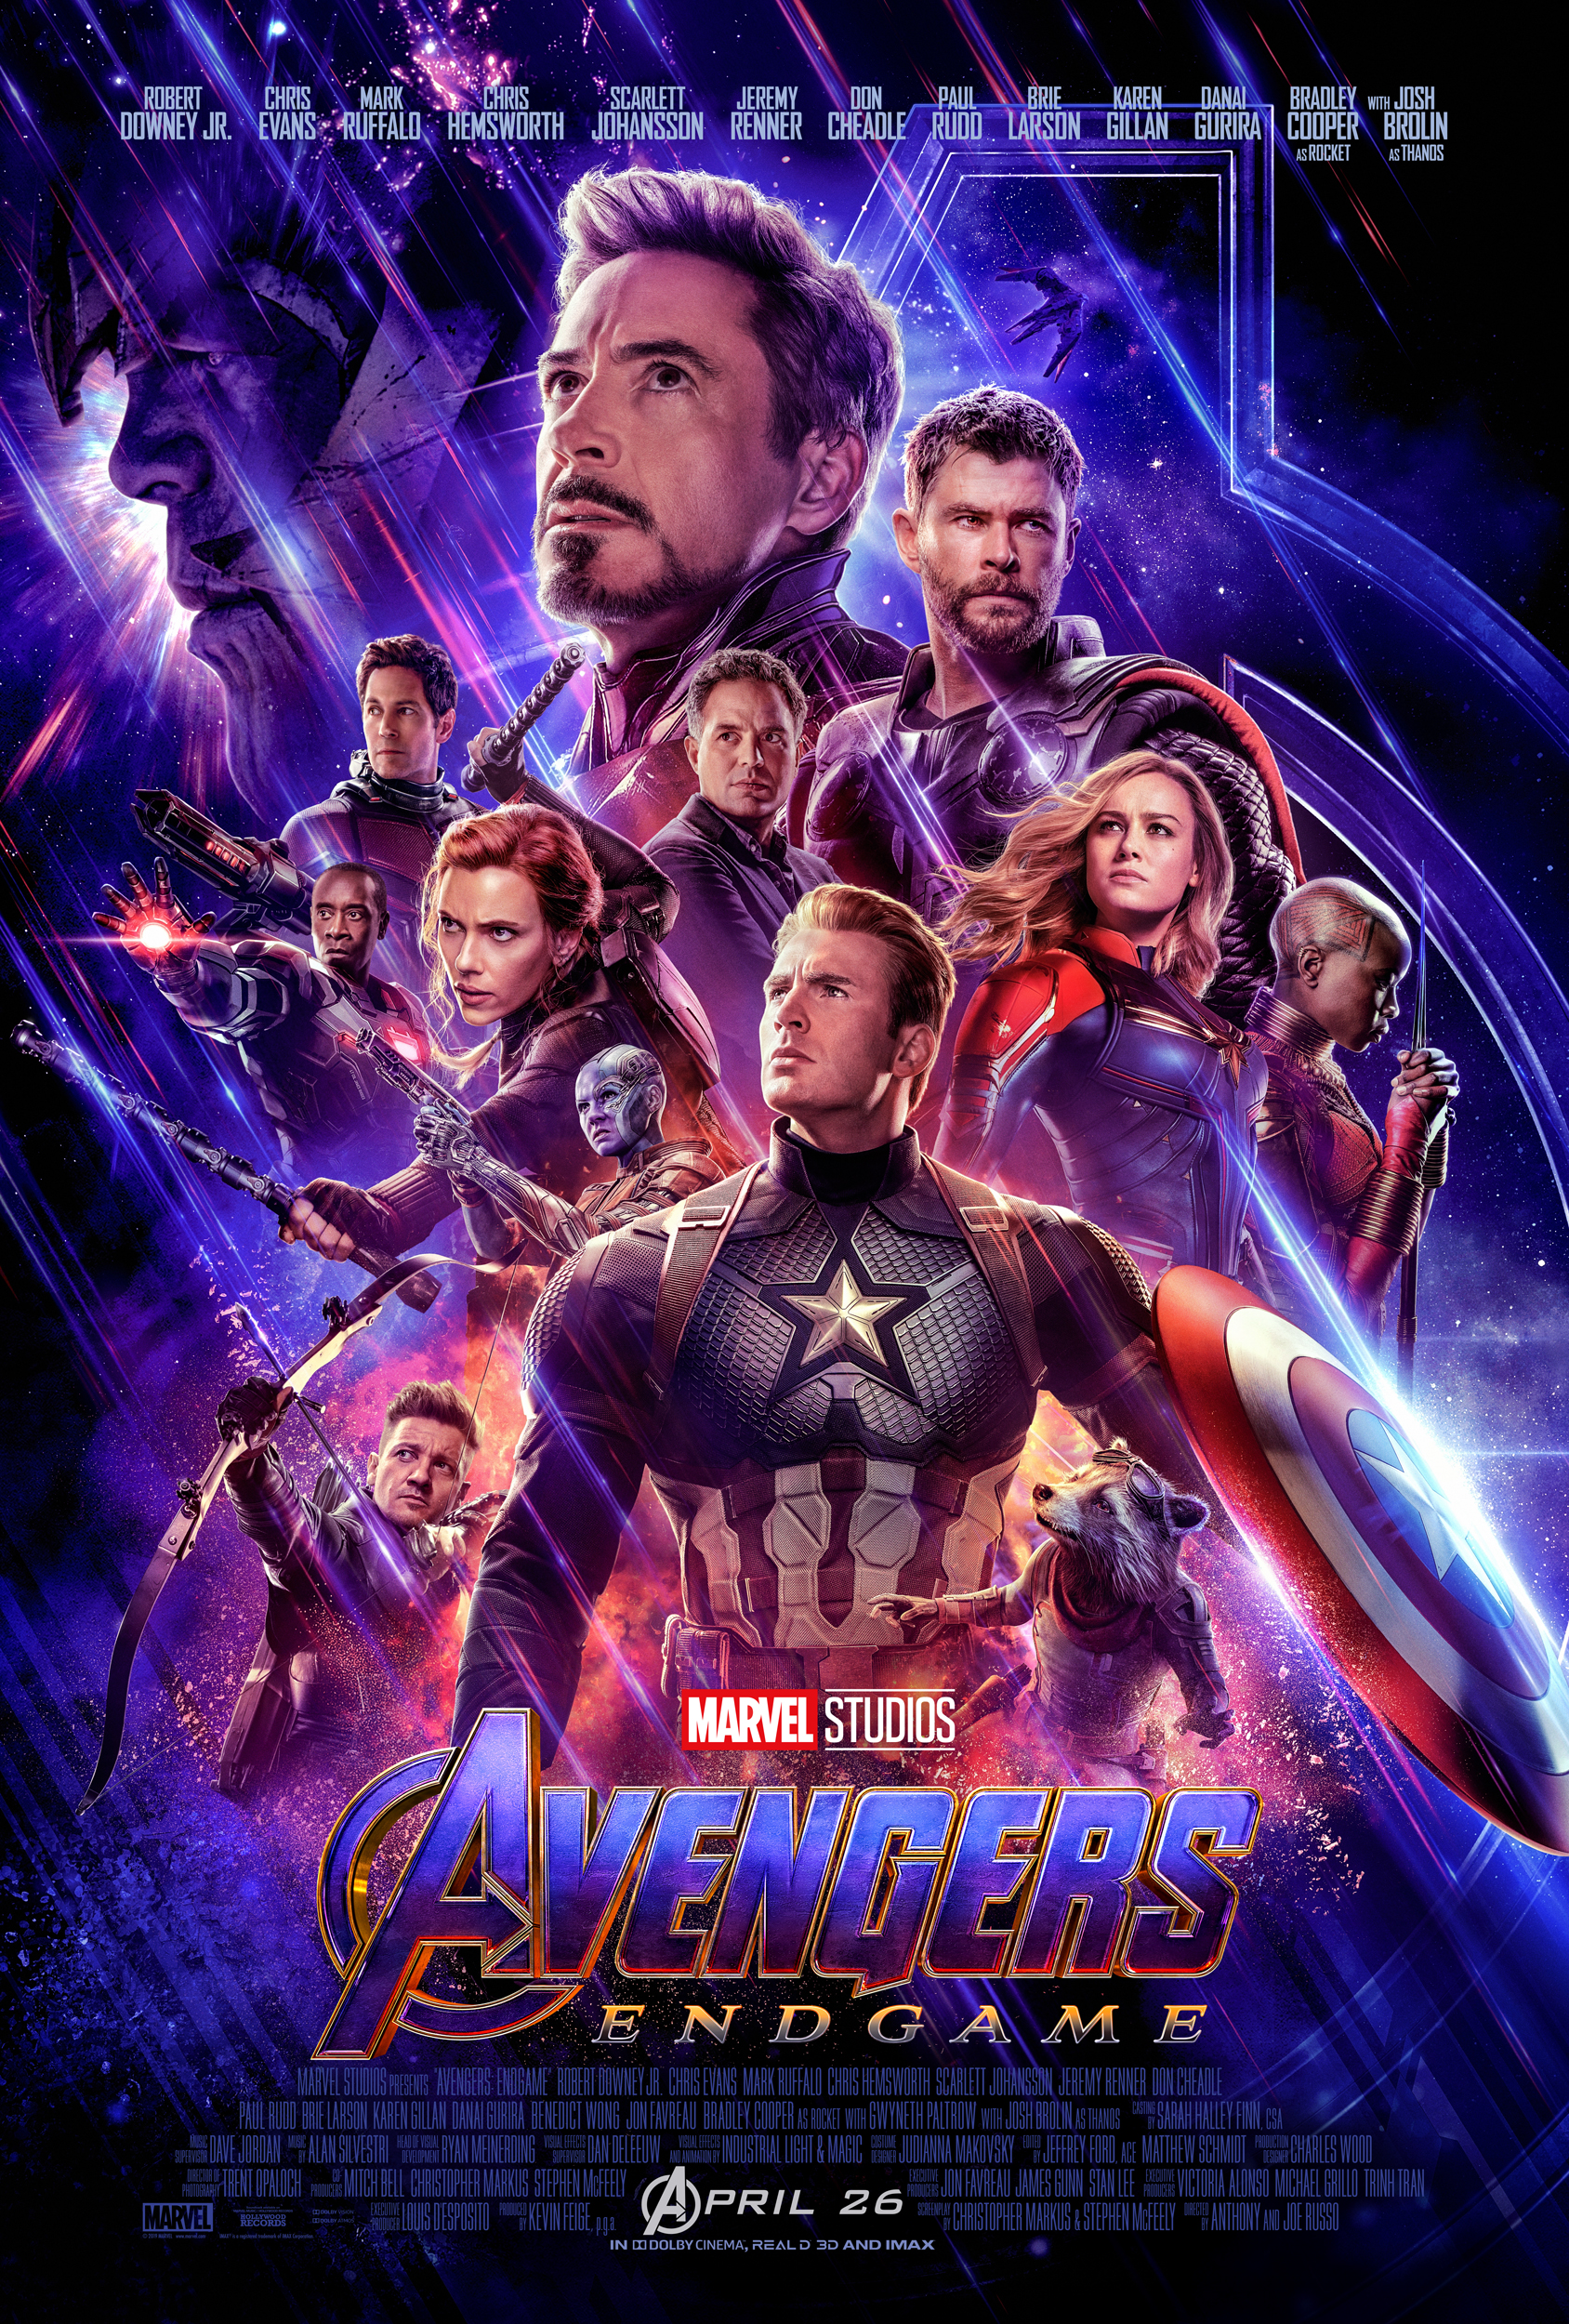 Avengers: Endgame | Marvel Cinematic Universe Wiki | FANDOM powered